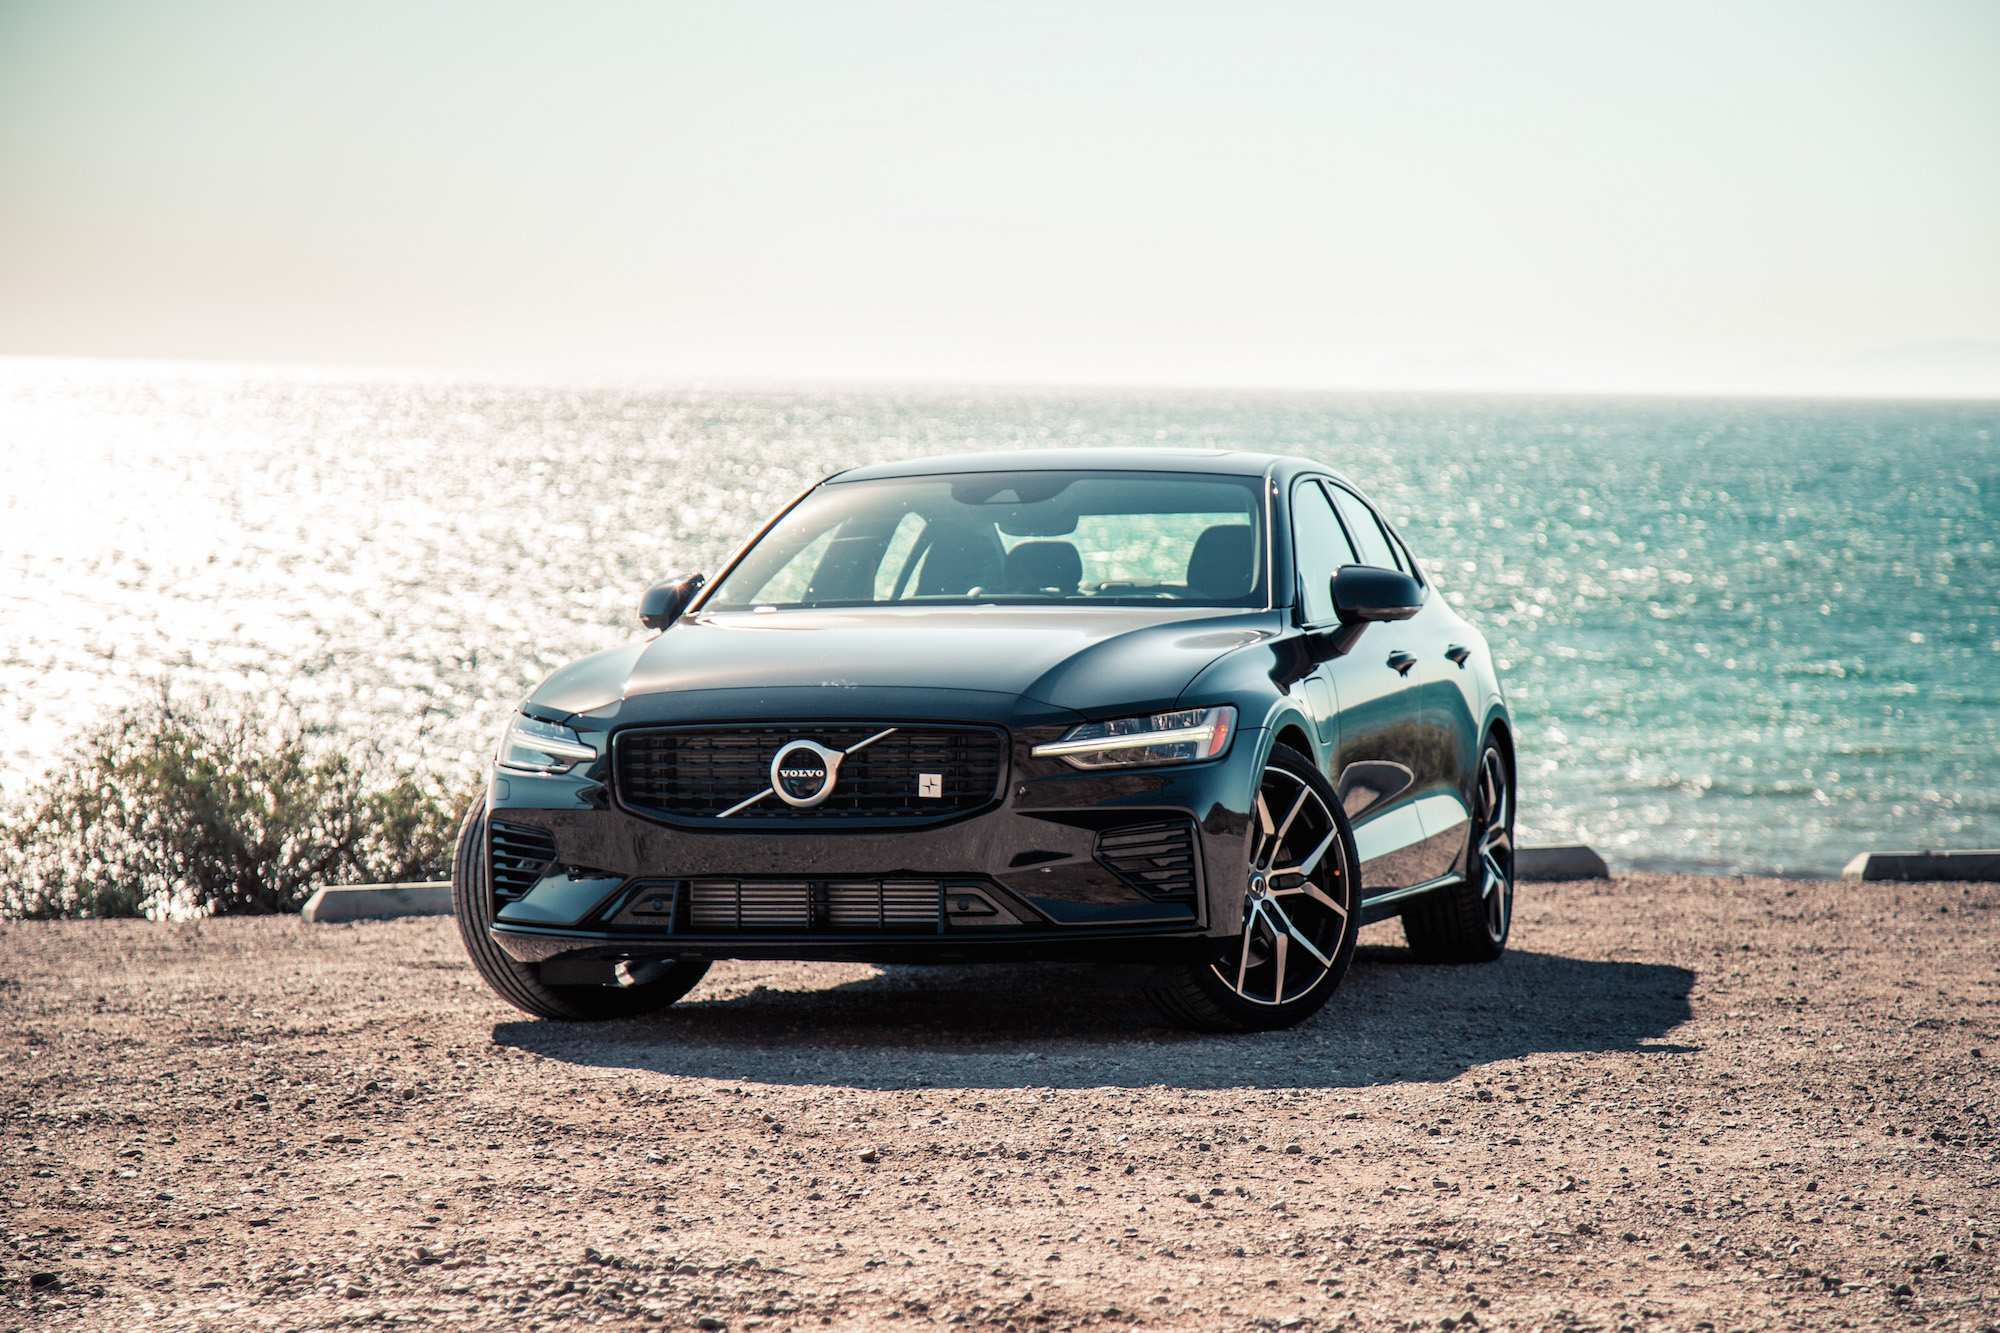 90 Concept of Volvo 2020 S60 Review for Volvo 2020 S60